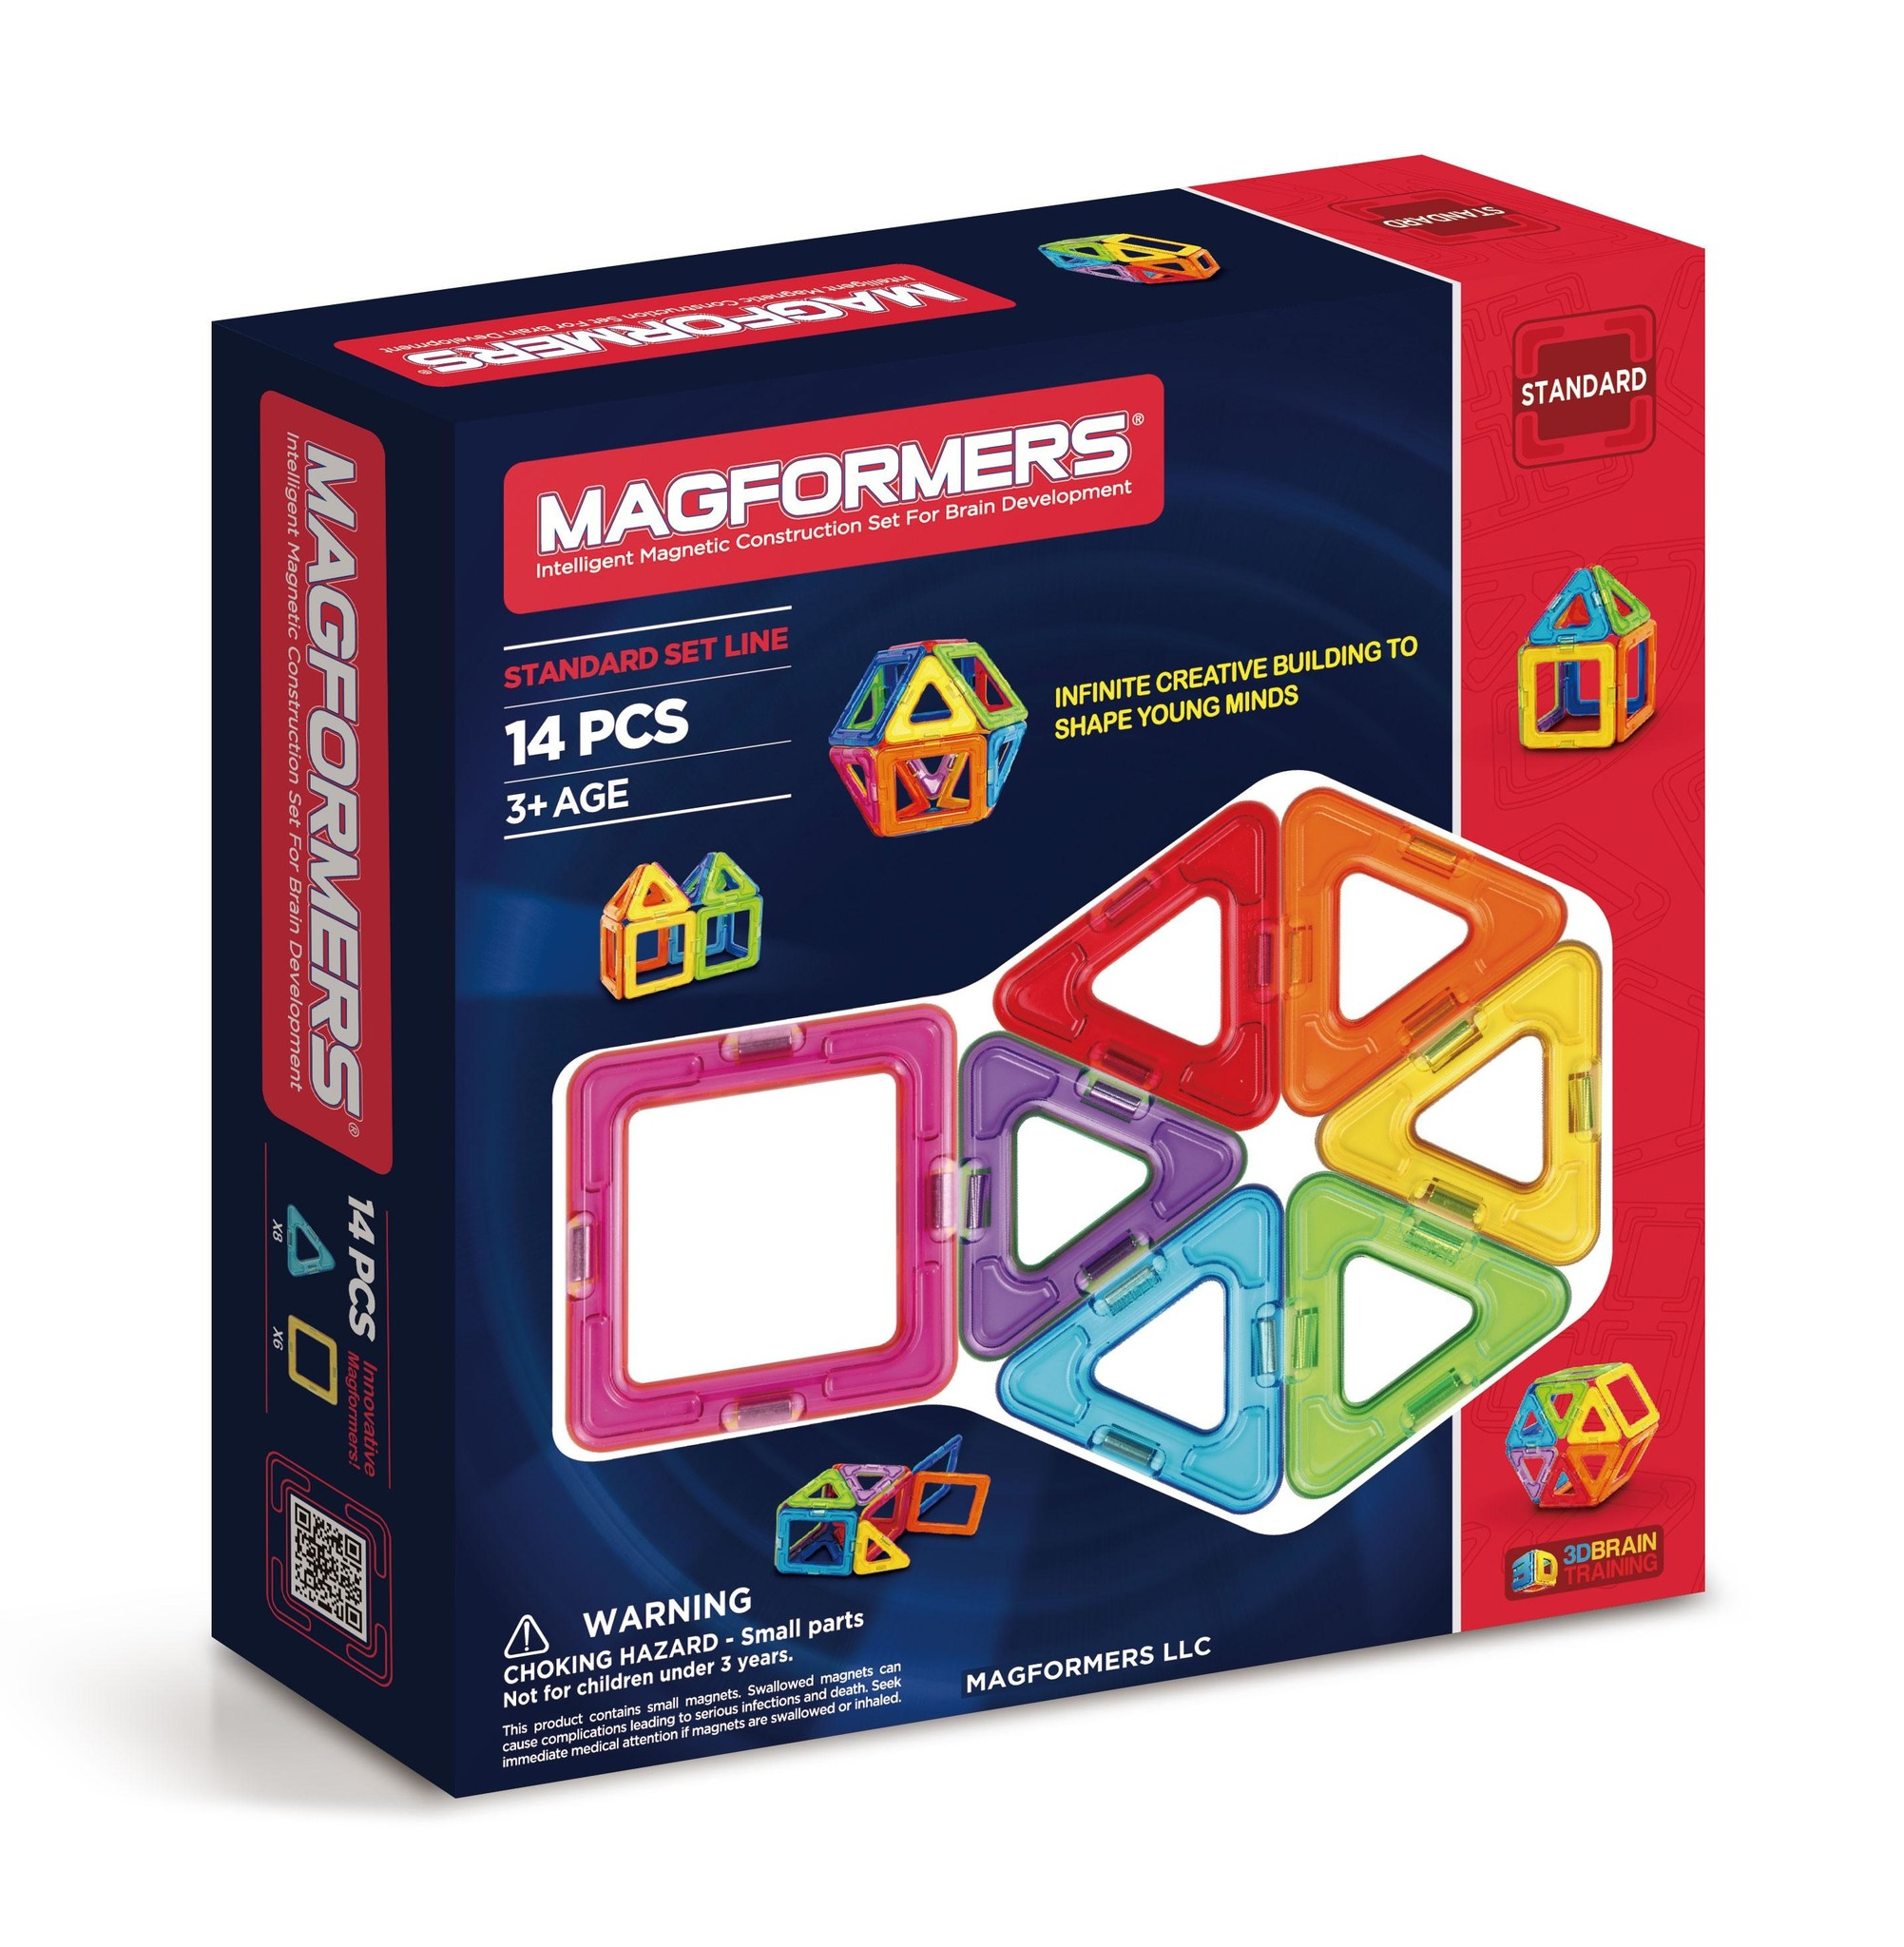 Magformers Basic Plus 14PC Magnetic Construction Set STEAM Toy Ages 3 Years+